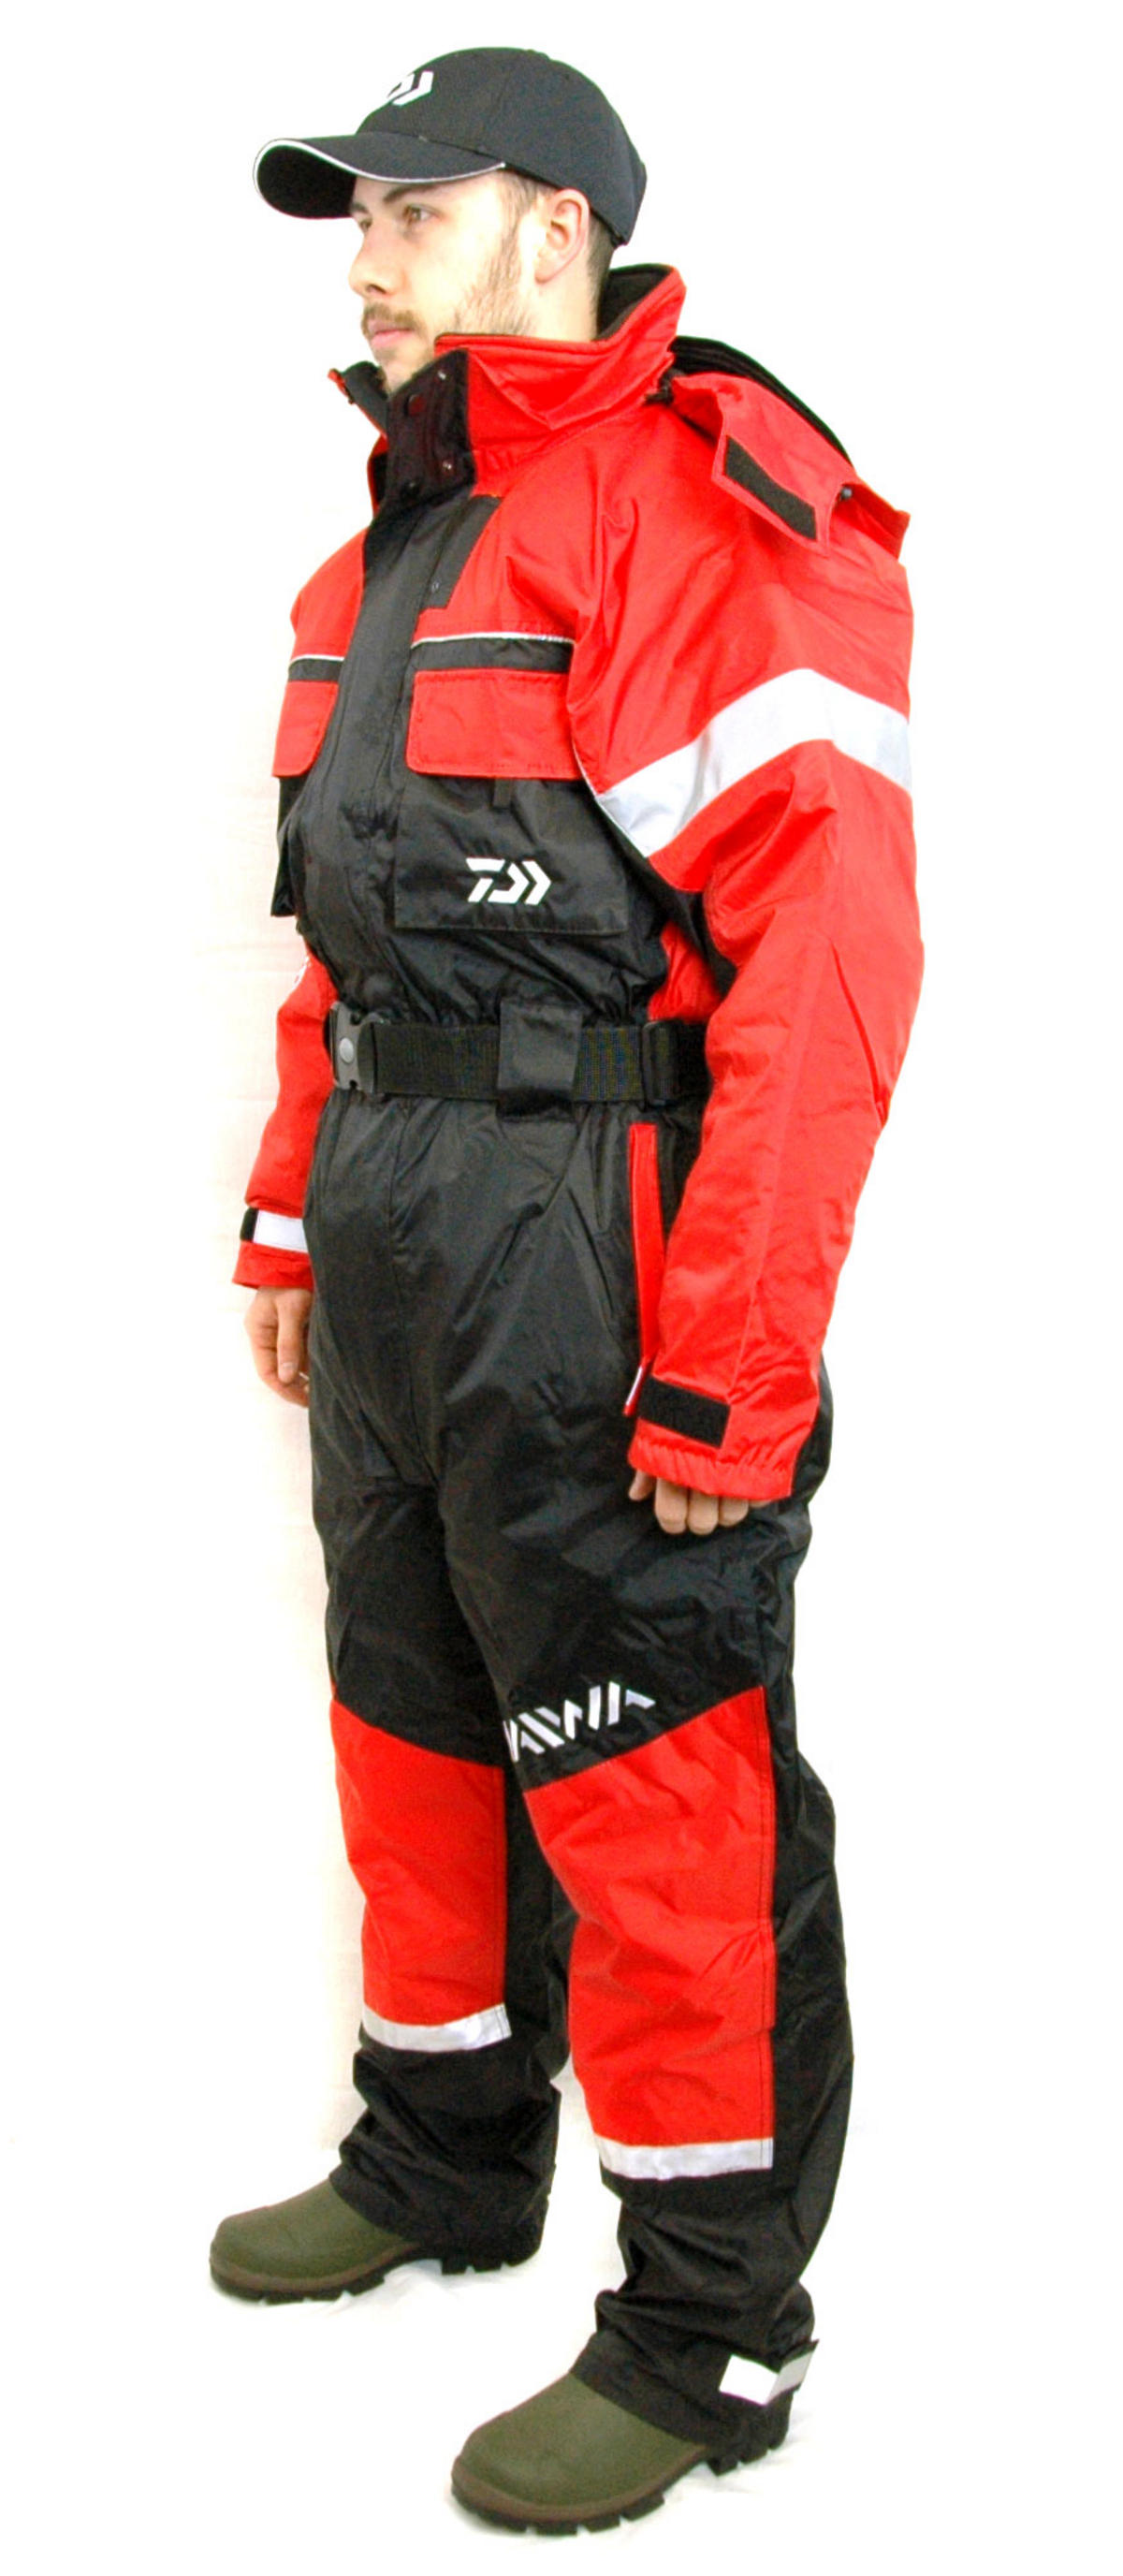 Special Clearance Offer Daiwa One Piece Flotataion Suit - Size XL